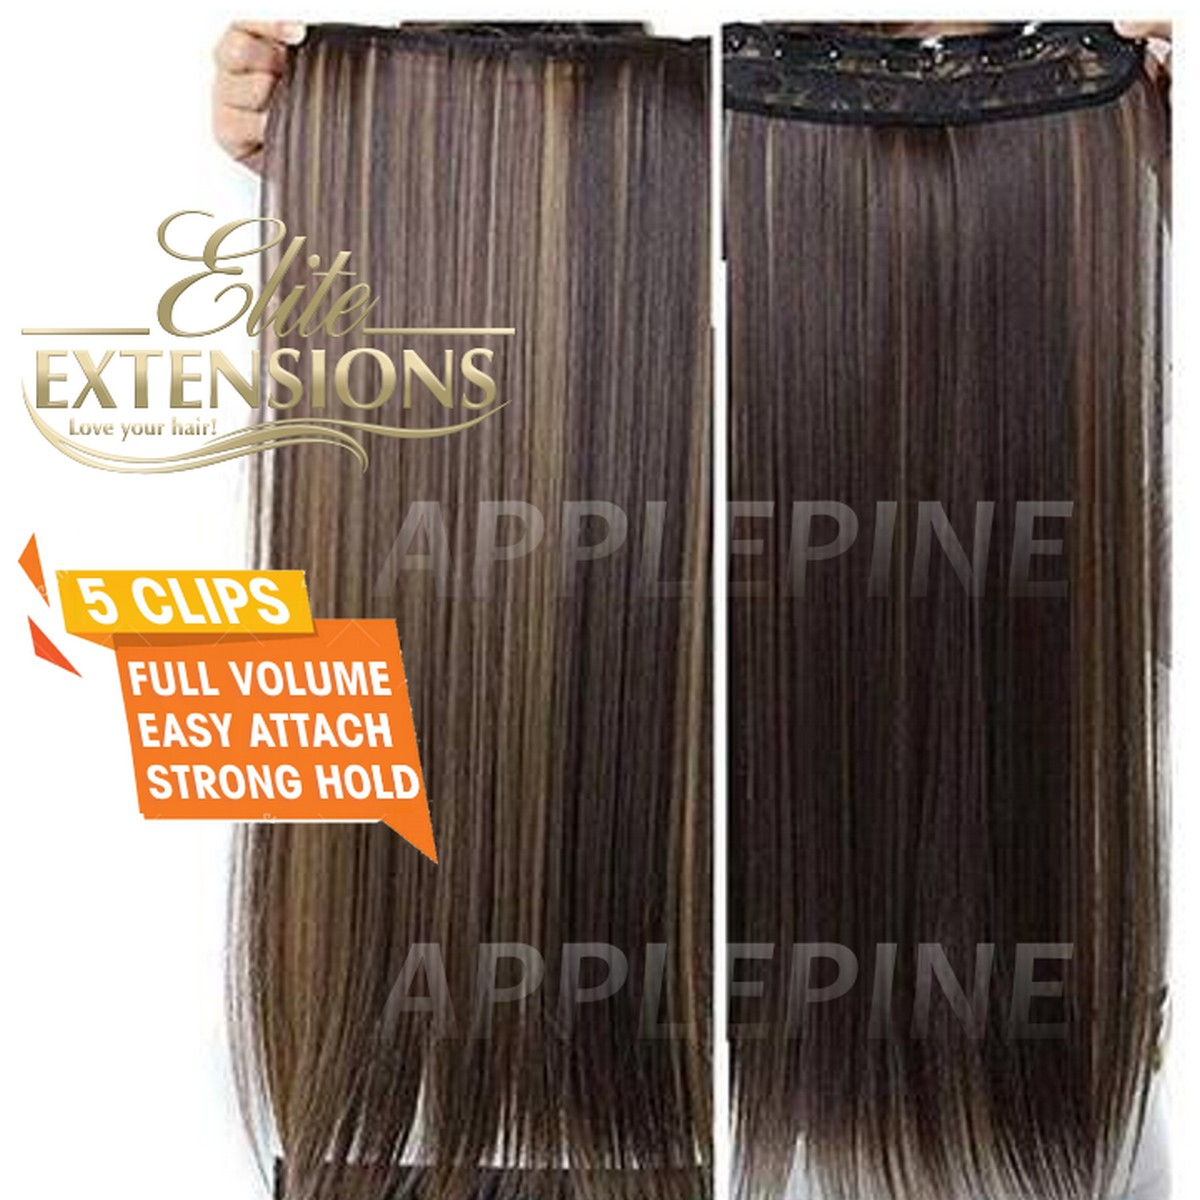 Ombre Hair Extensions for Women 5 Clips 30 Inches - Used With Hair Styling Stick Bun Fashion Maker Hair Puff Maker Comb Sponge Hair Make Pad Comb hair Hair Puff Hairstyle Device